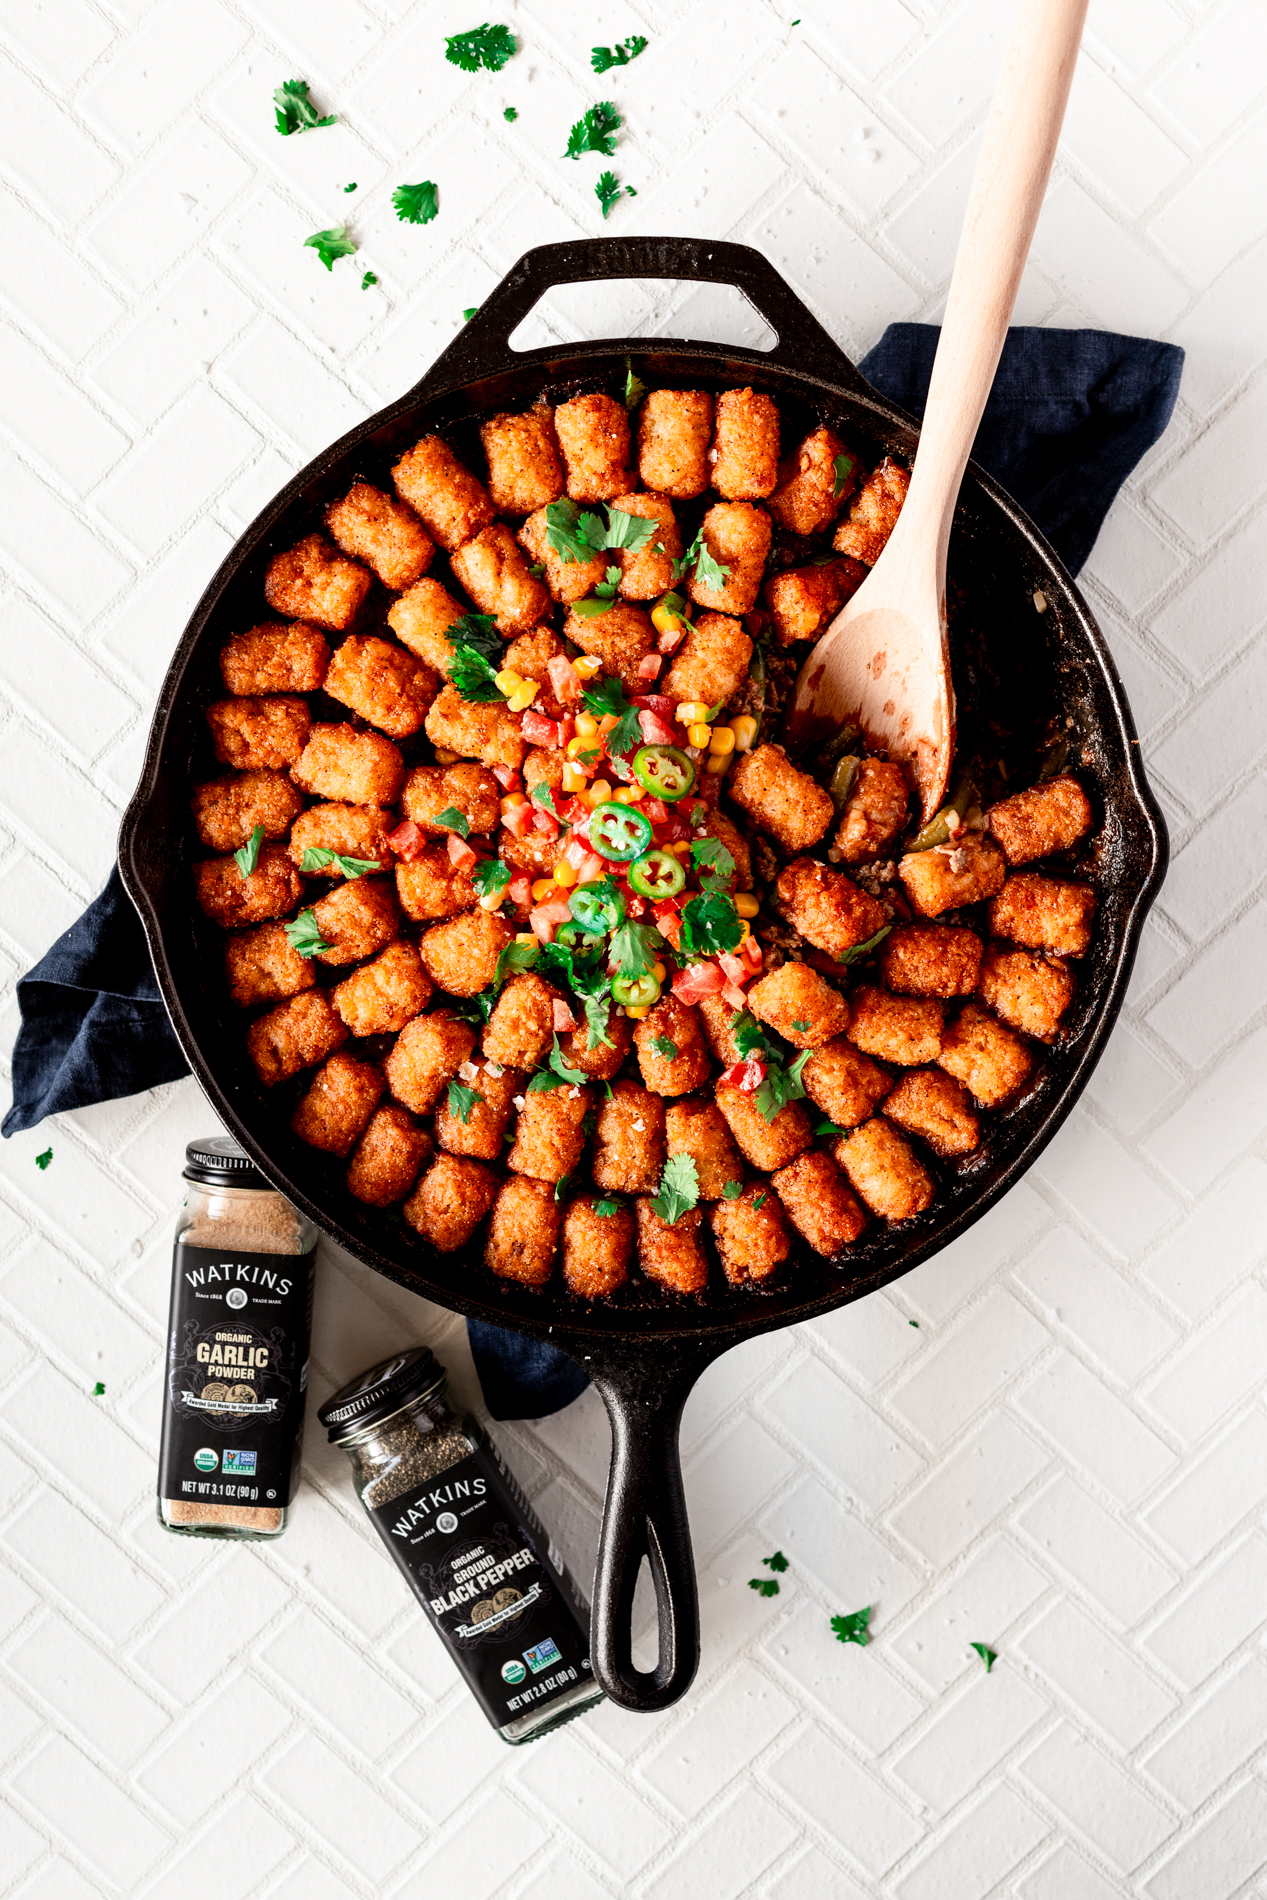 overhead view of a skillet of tater tot hotdish with a scoop removed and a wooden spoon sitting inside the skillet. two bottles of seasoning are below the skillet